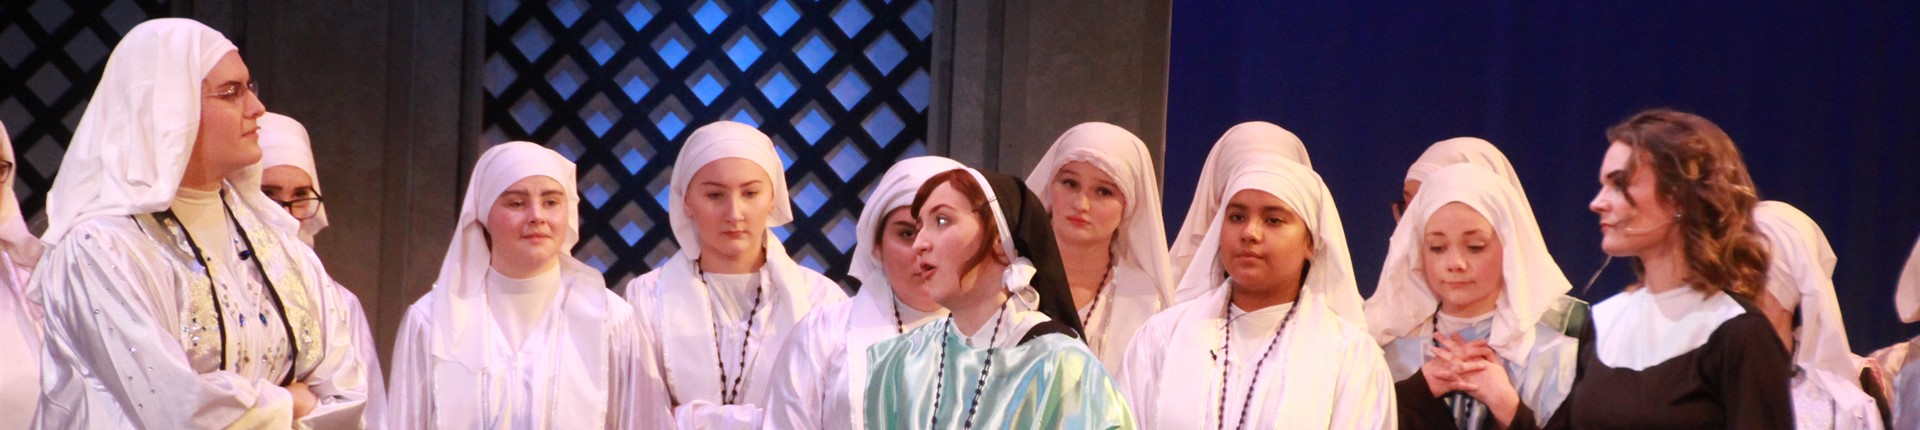 "Nuns from ""Sister Act"""